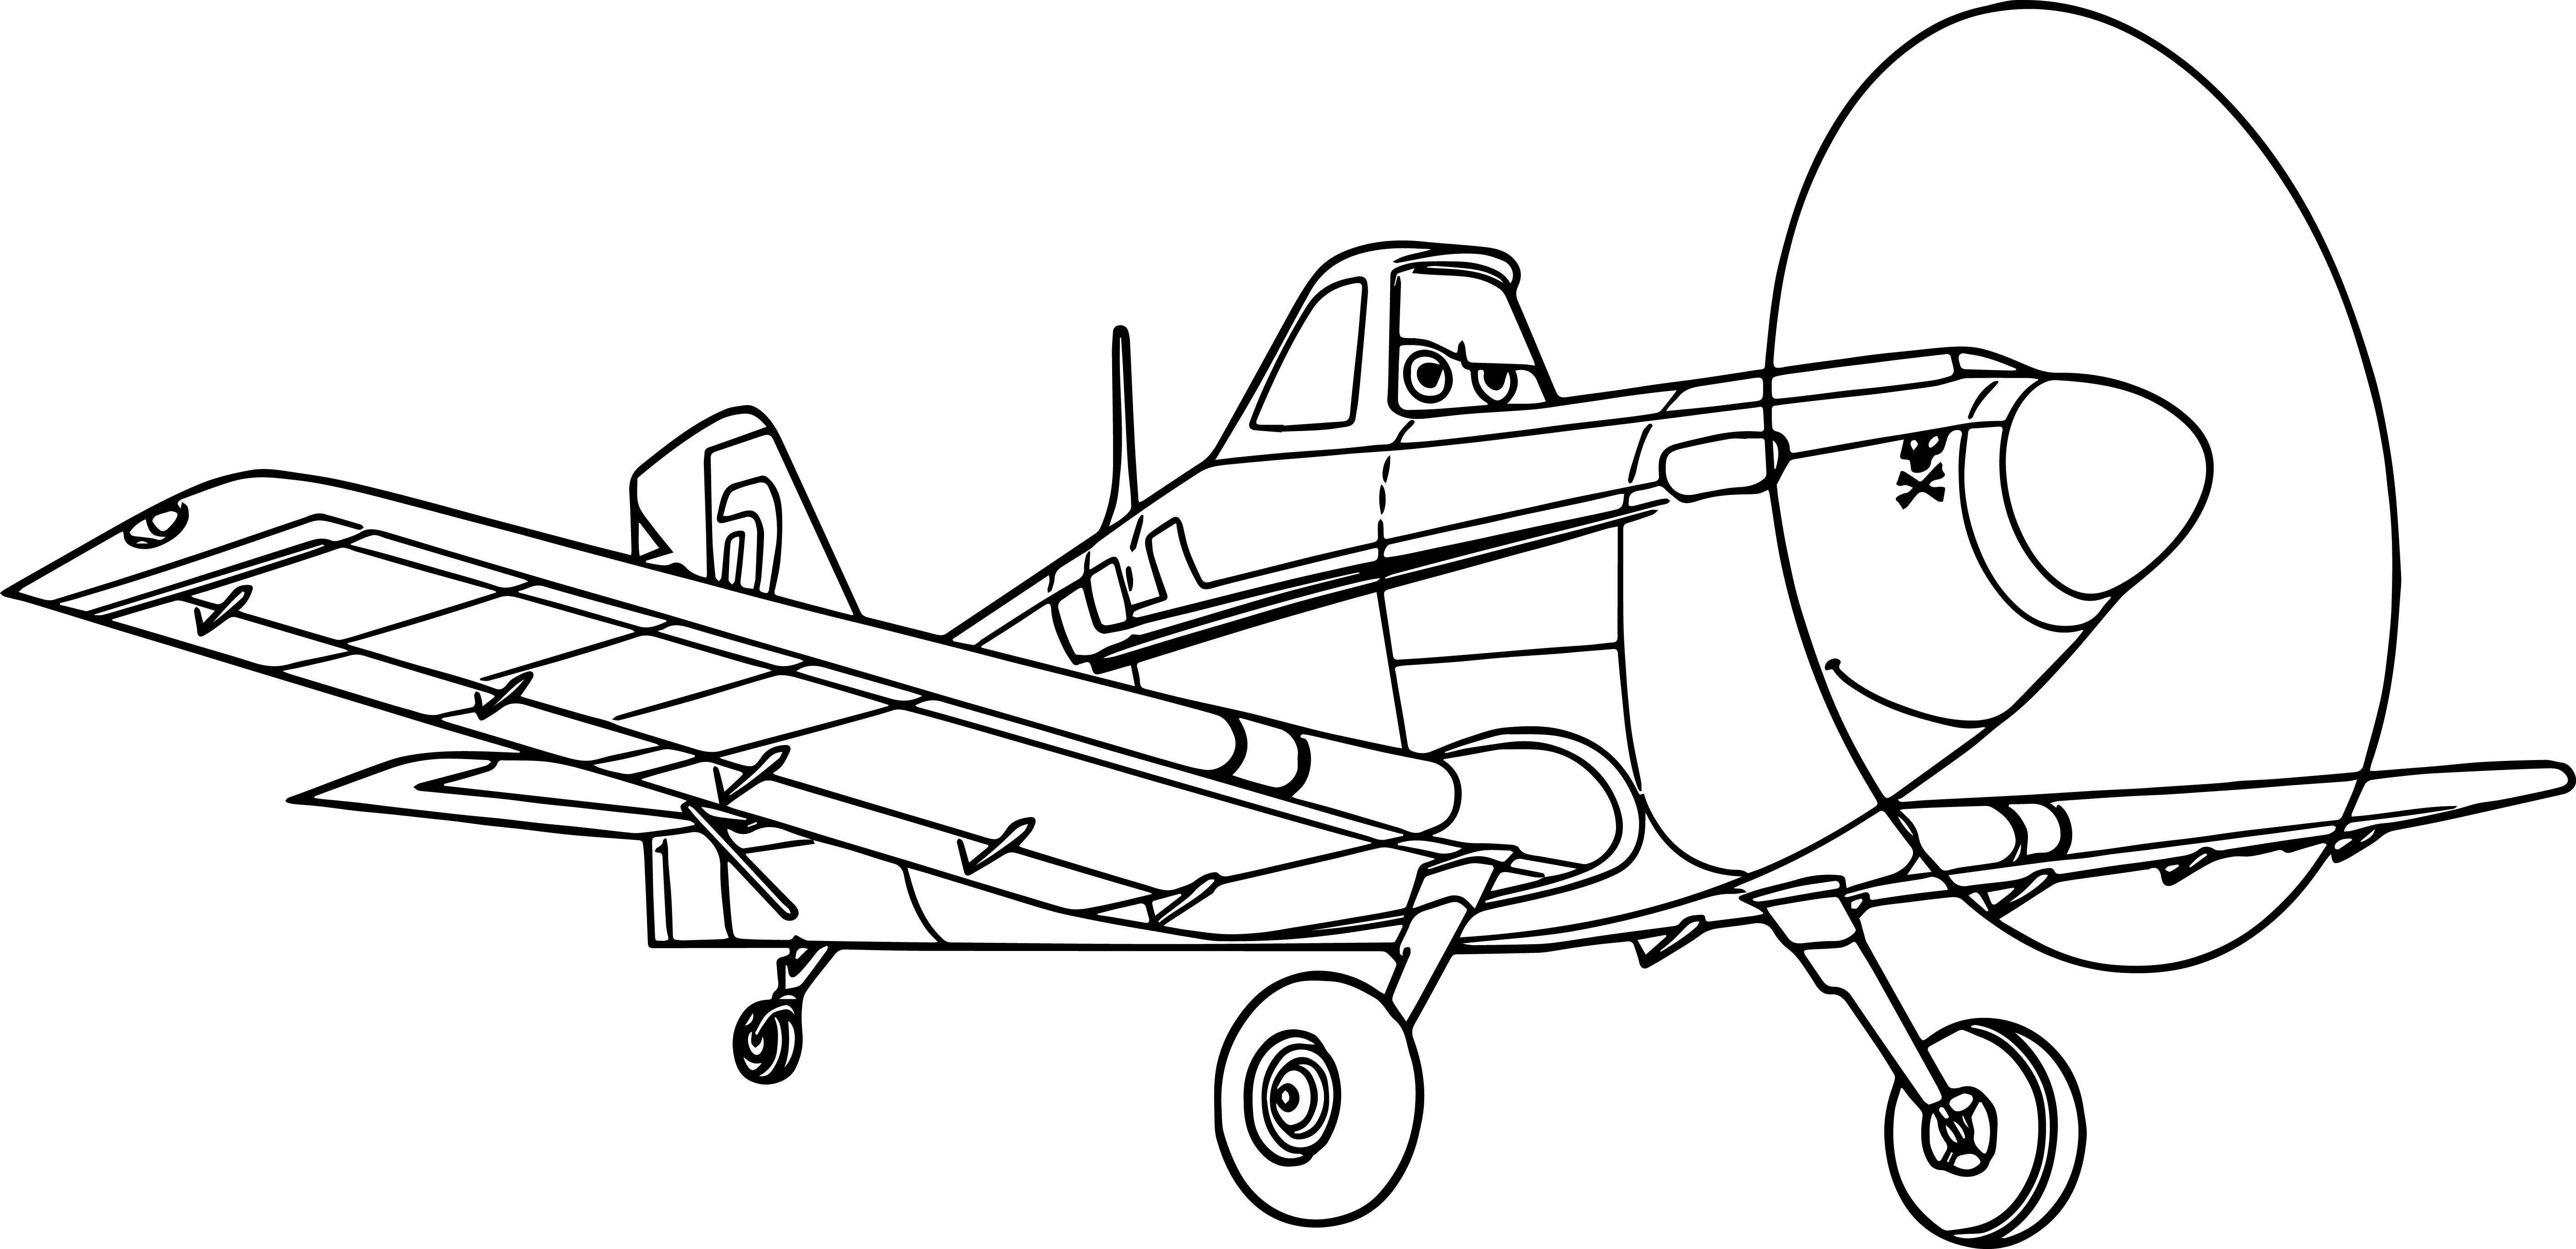 planes coloring pictures cartoon airplane coloring pages at getcoloringscom free pictures planes coloring